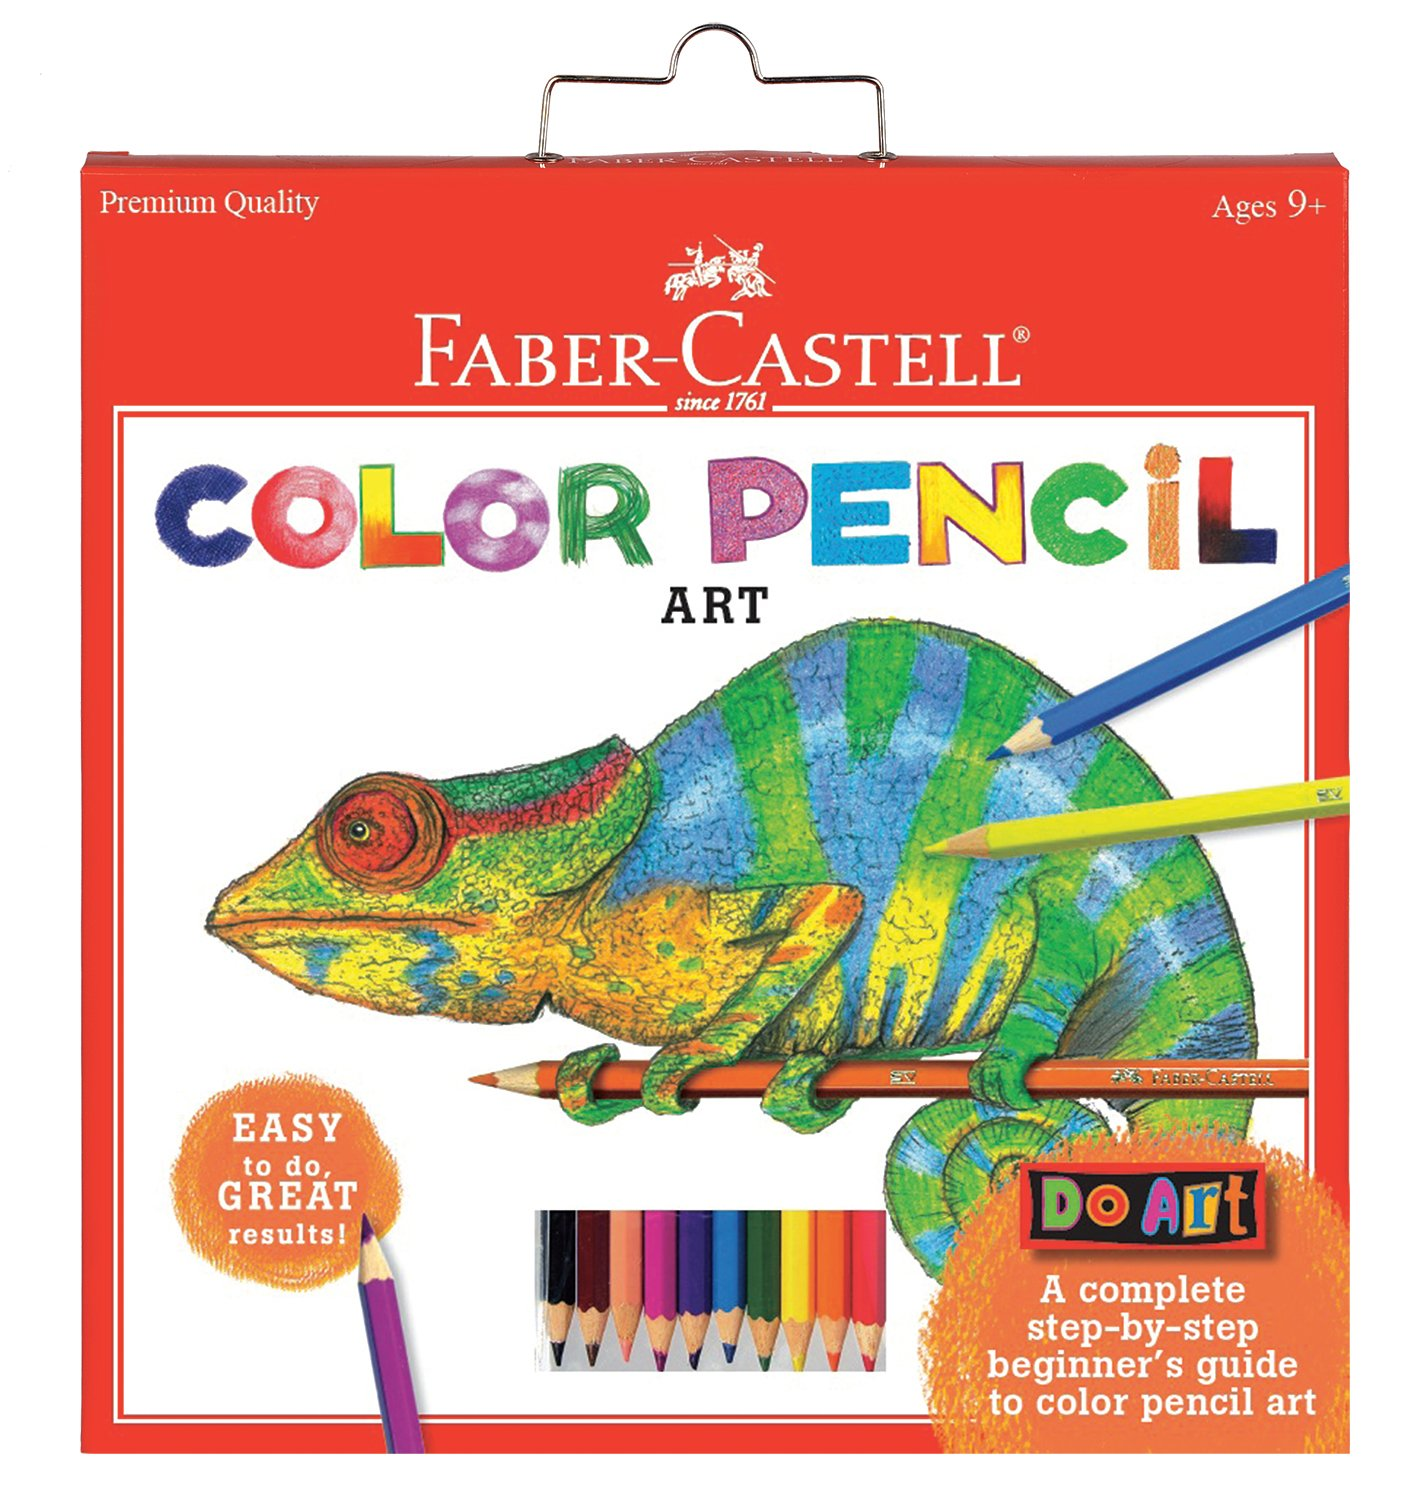 Faber-Castell - Do Art Drawing and Sketching Art Kit - Premium Kids Crafts Faber Castell 14558